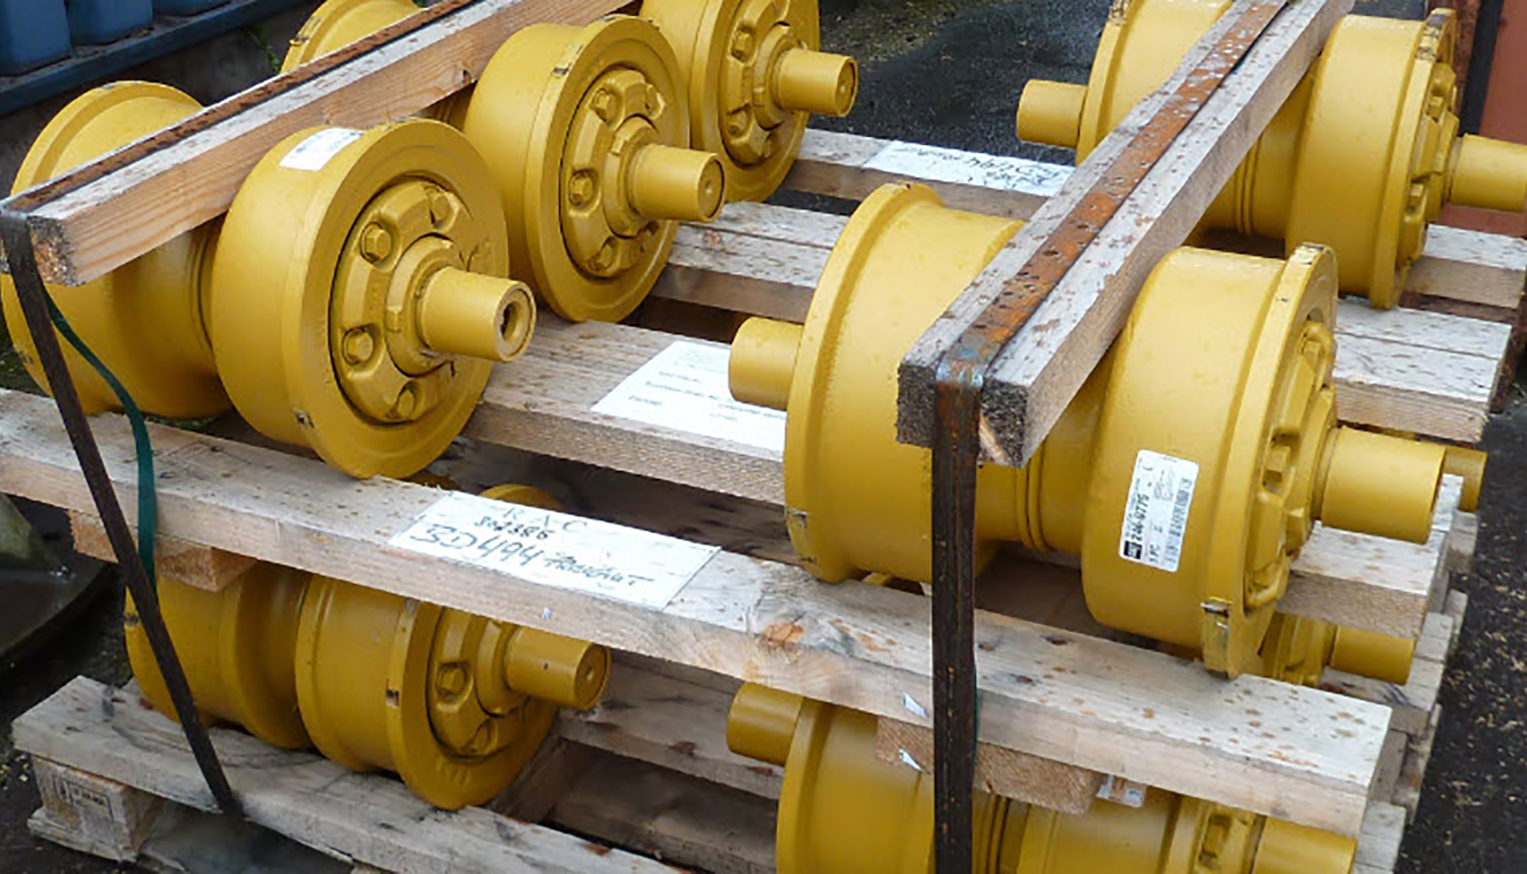 Undercarriage parts for heavy duty construction machines